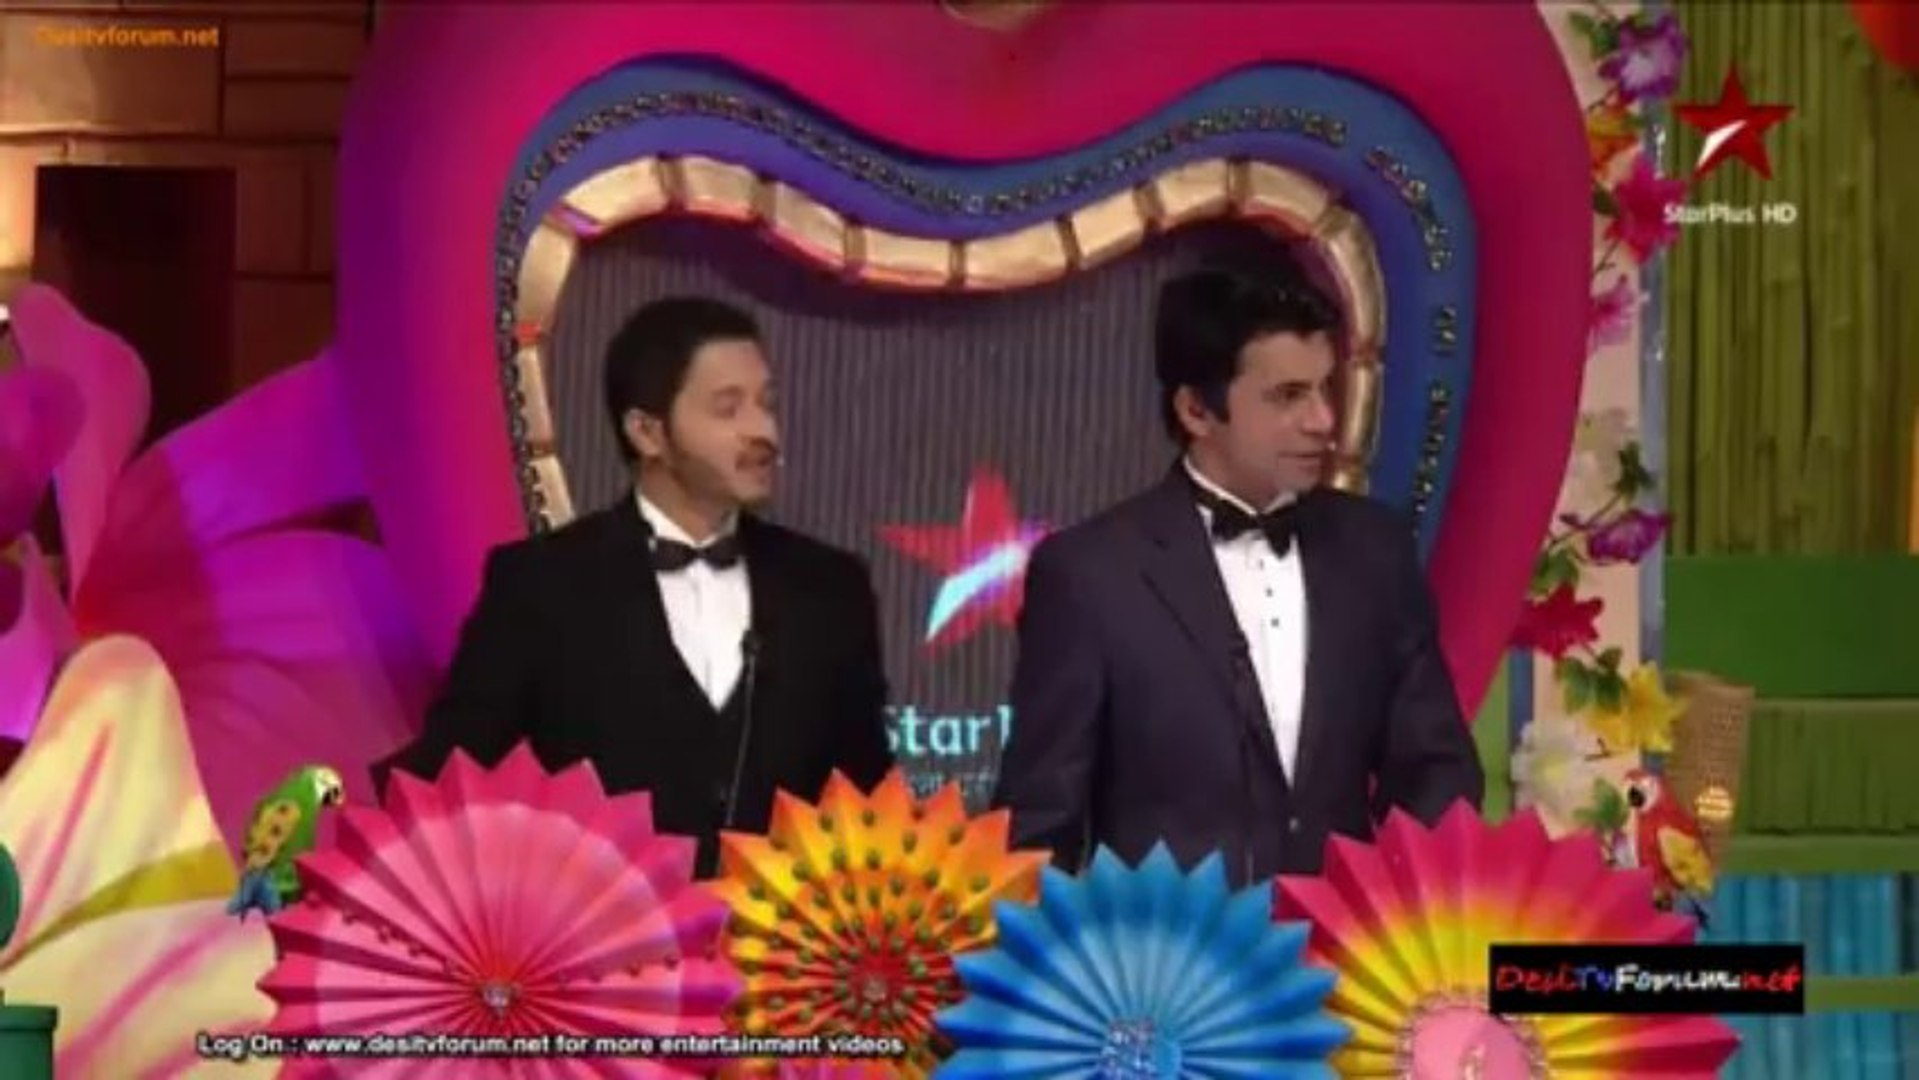 Big Star Entertainment Awards 2013 - Main Event 720p 31st December 2013 Video Watch Online HD Pt7